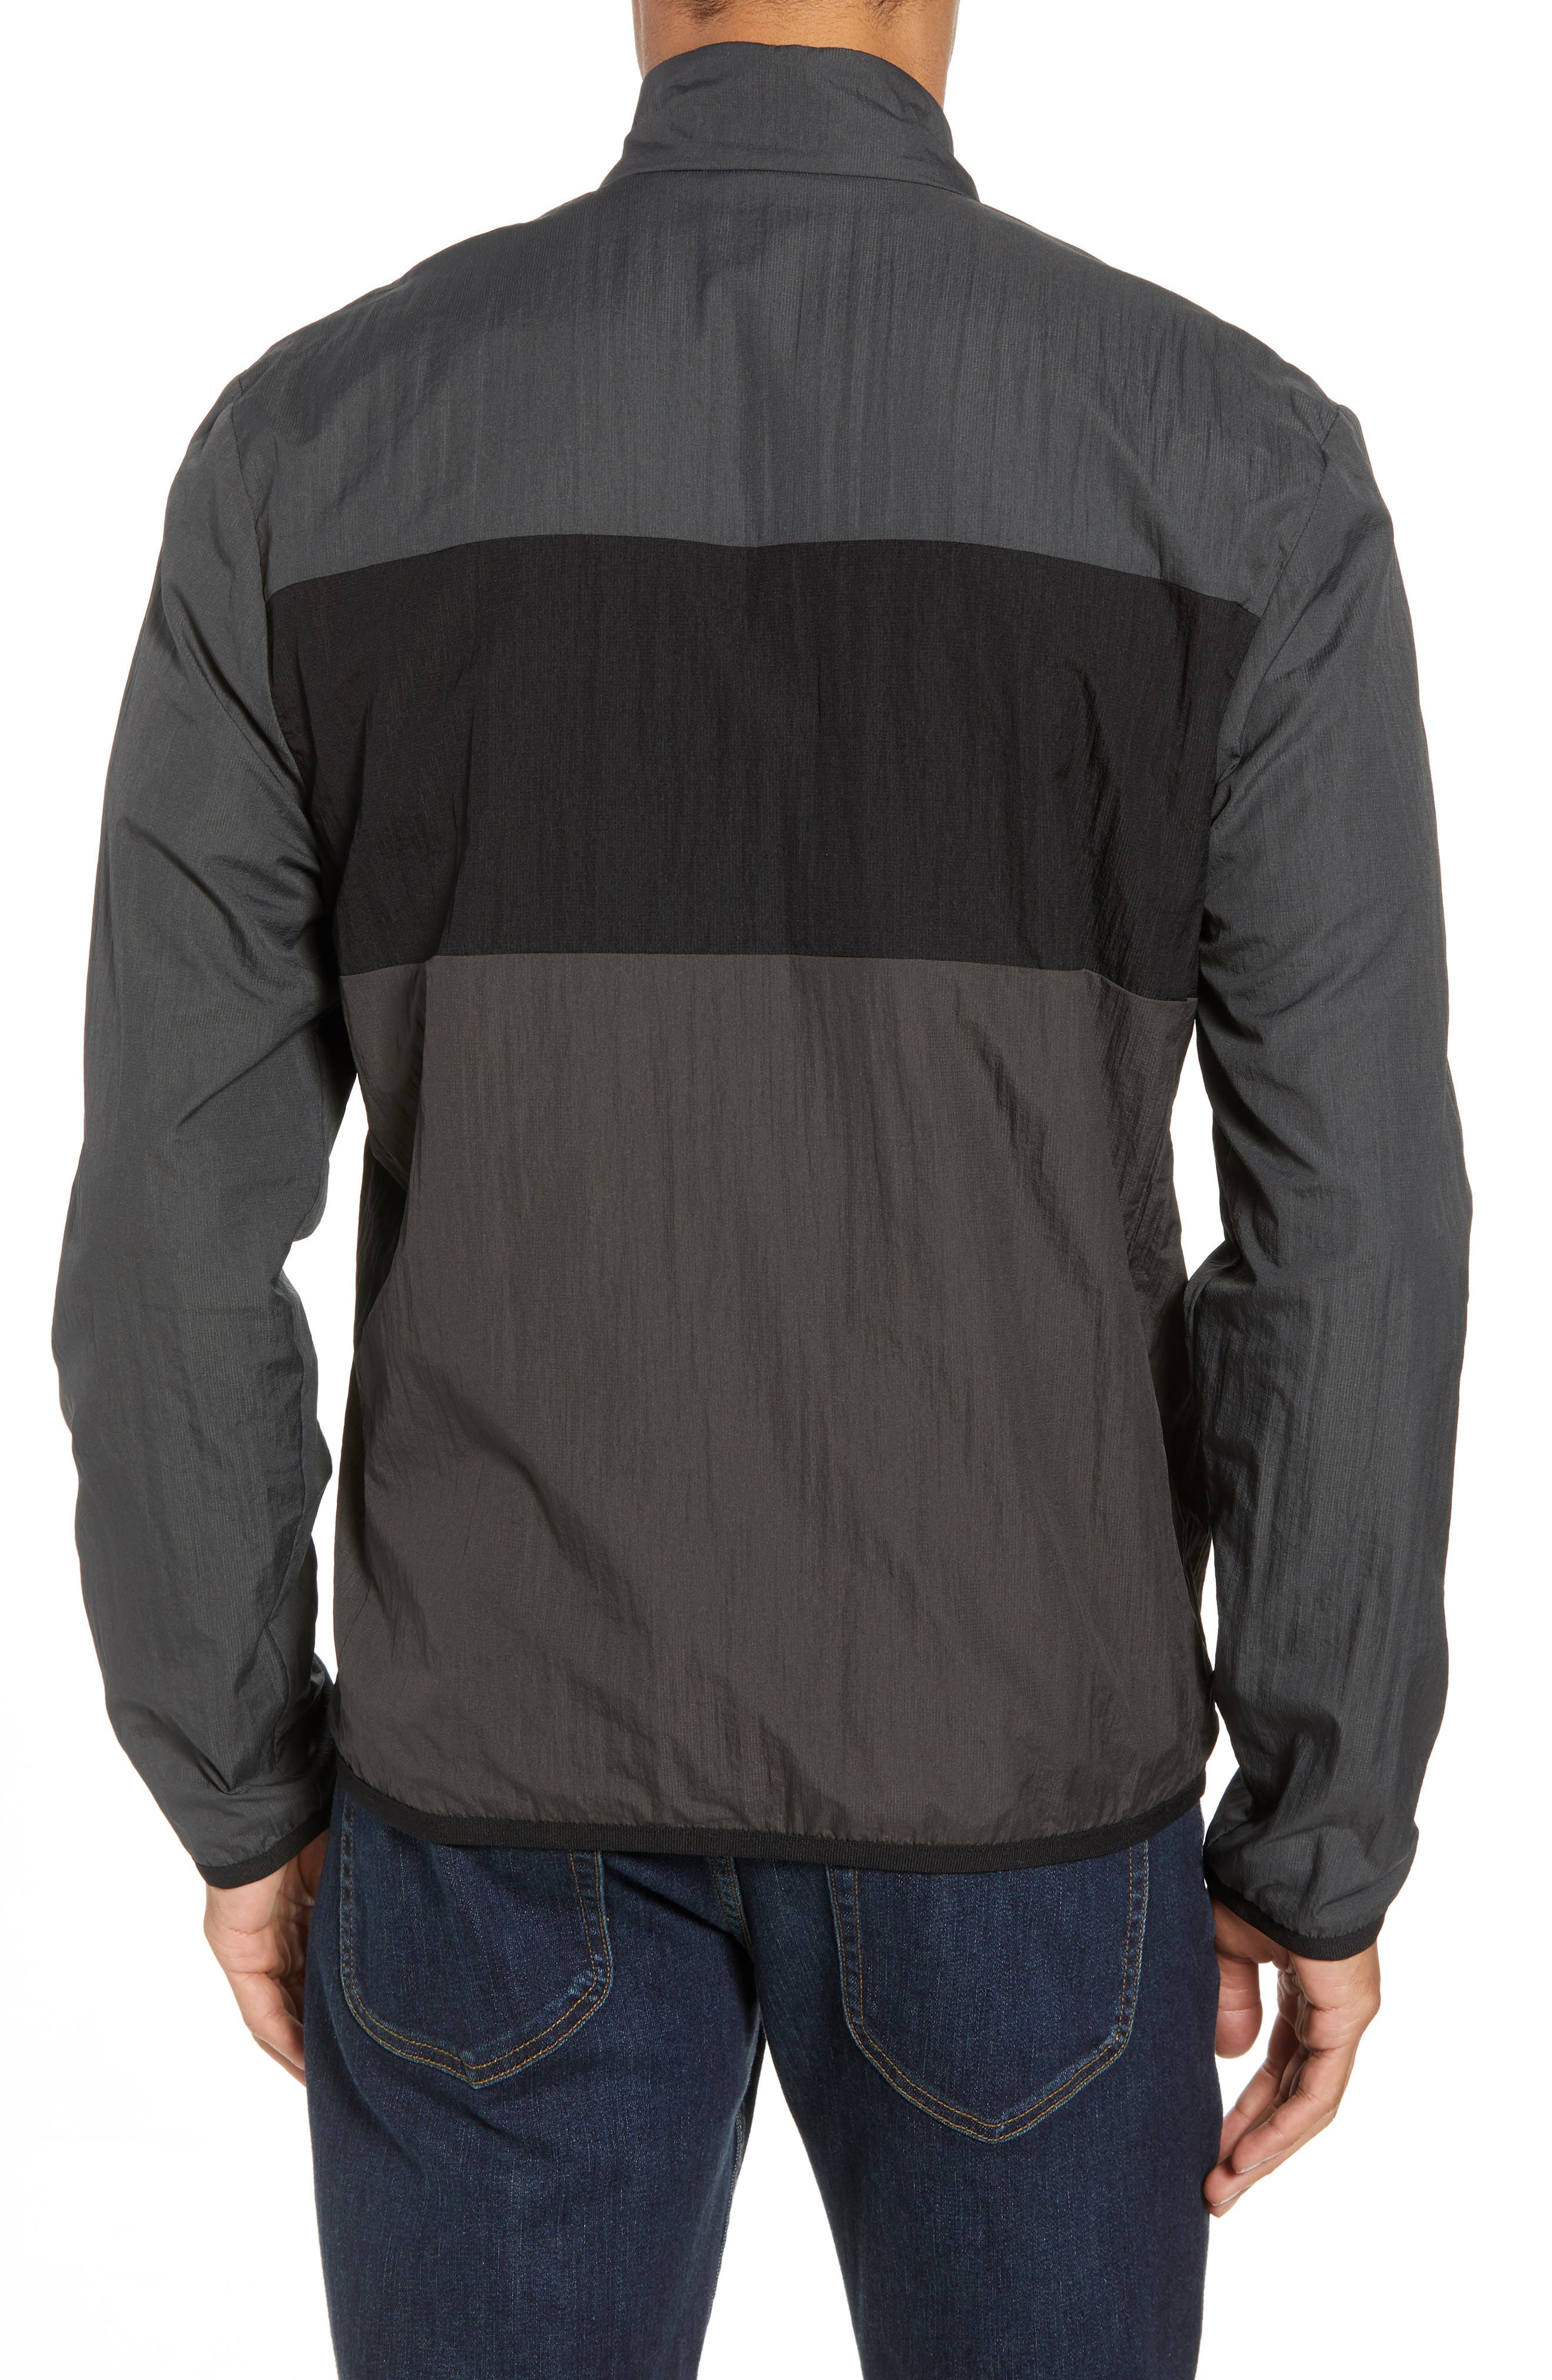 Stripe Ripstop Jacket,                             Alternate thumbnail 2, color,                             Pipe/ Black/ Abyss